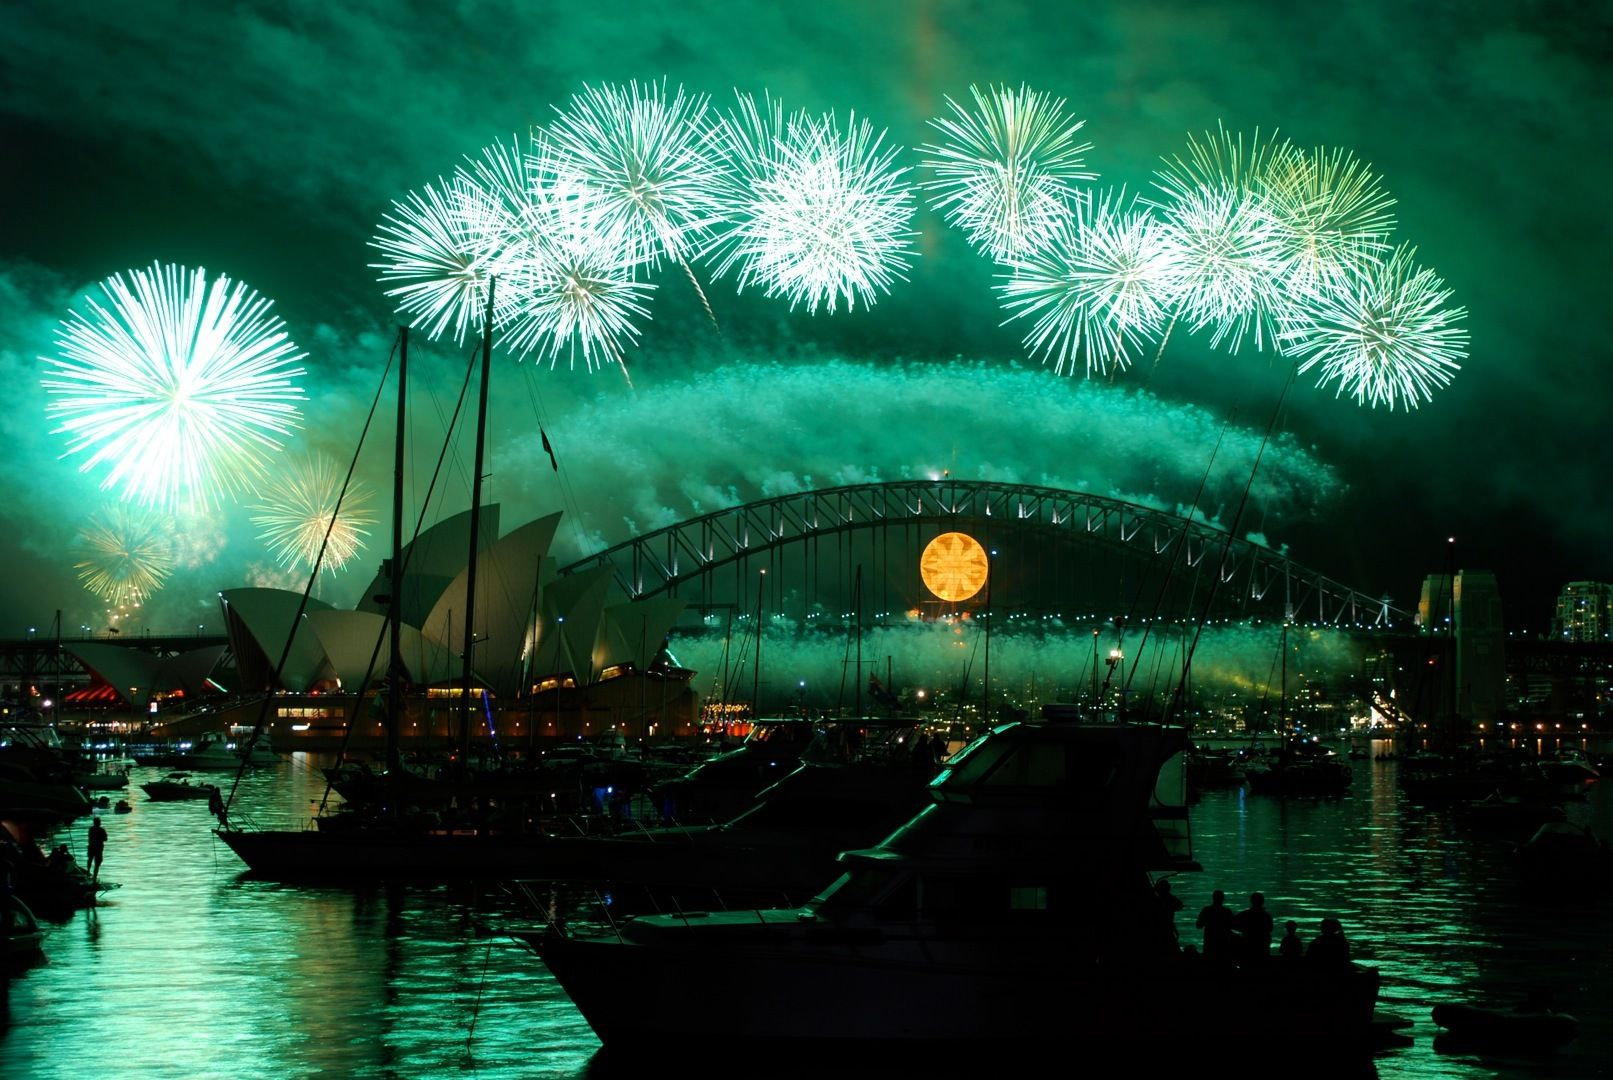 new year's sydney. Fireworks pictures, Scenery, Places